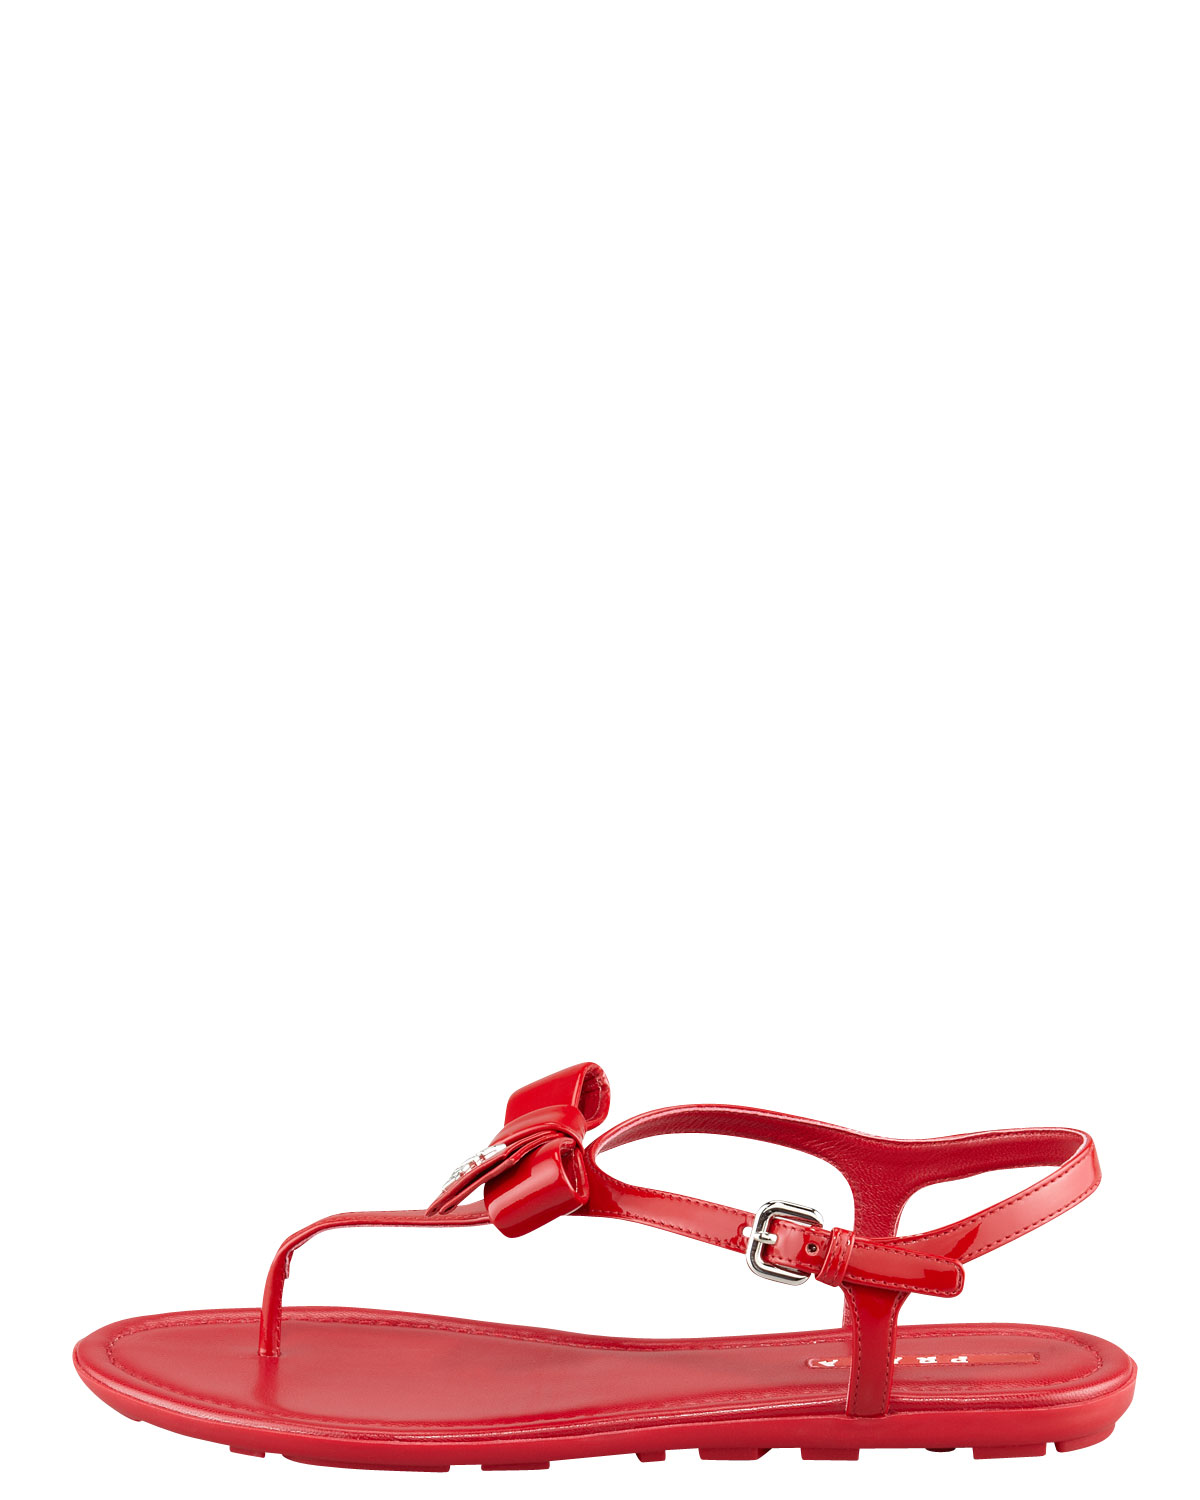 6a894e9f0 Prada Patent Leather Bow Thong Sandal in Red